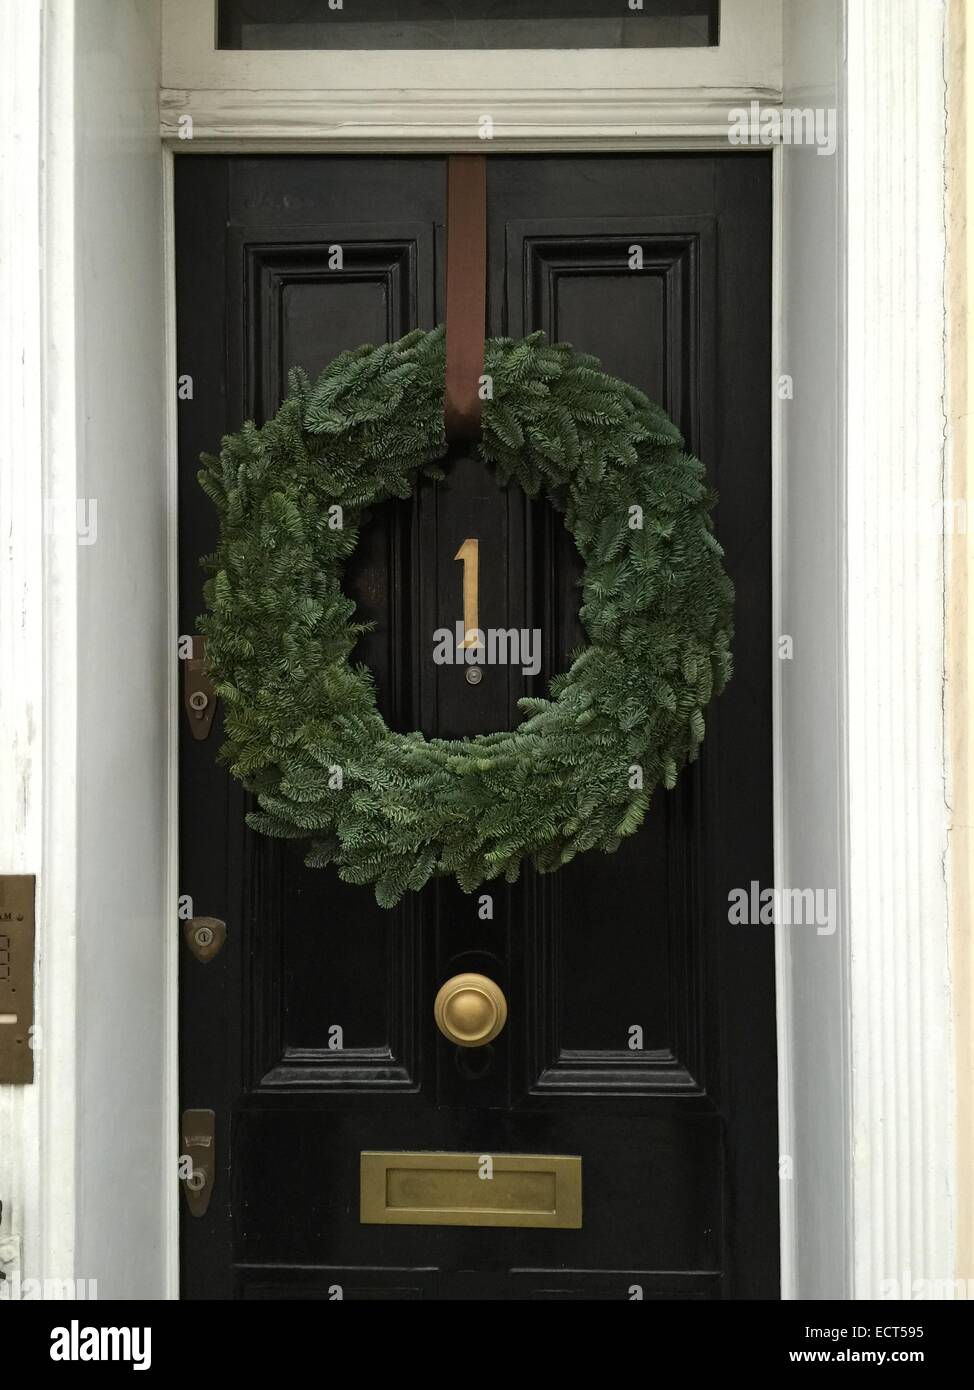 A Christmas Decorative Wreath On A Door In Belgravia, London UK.